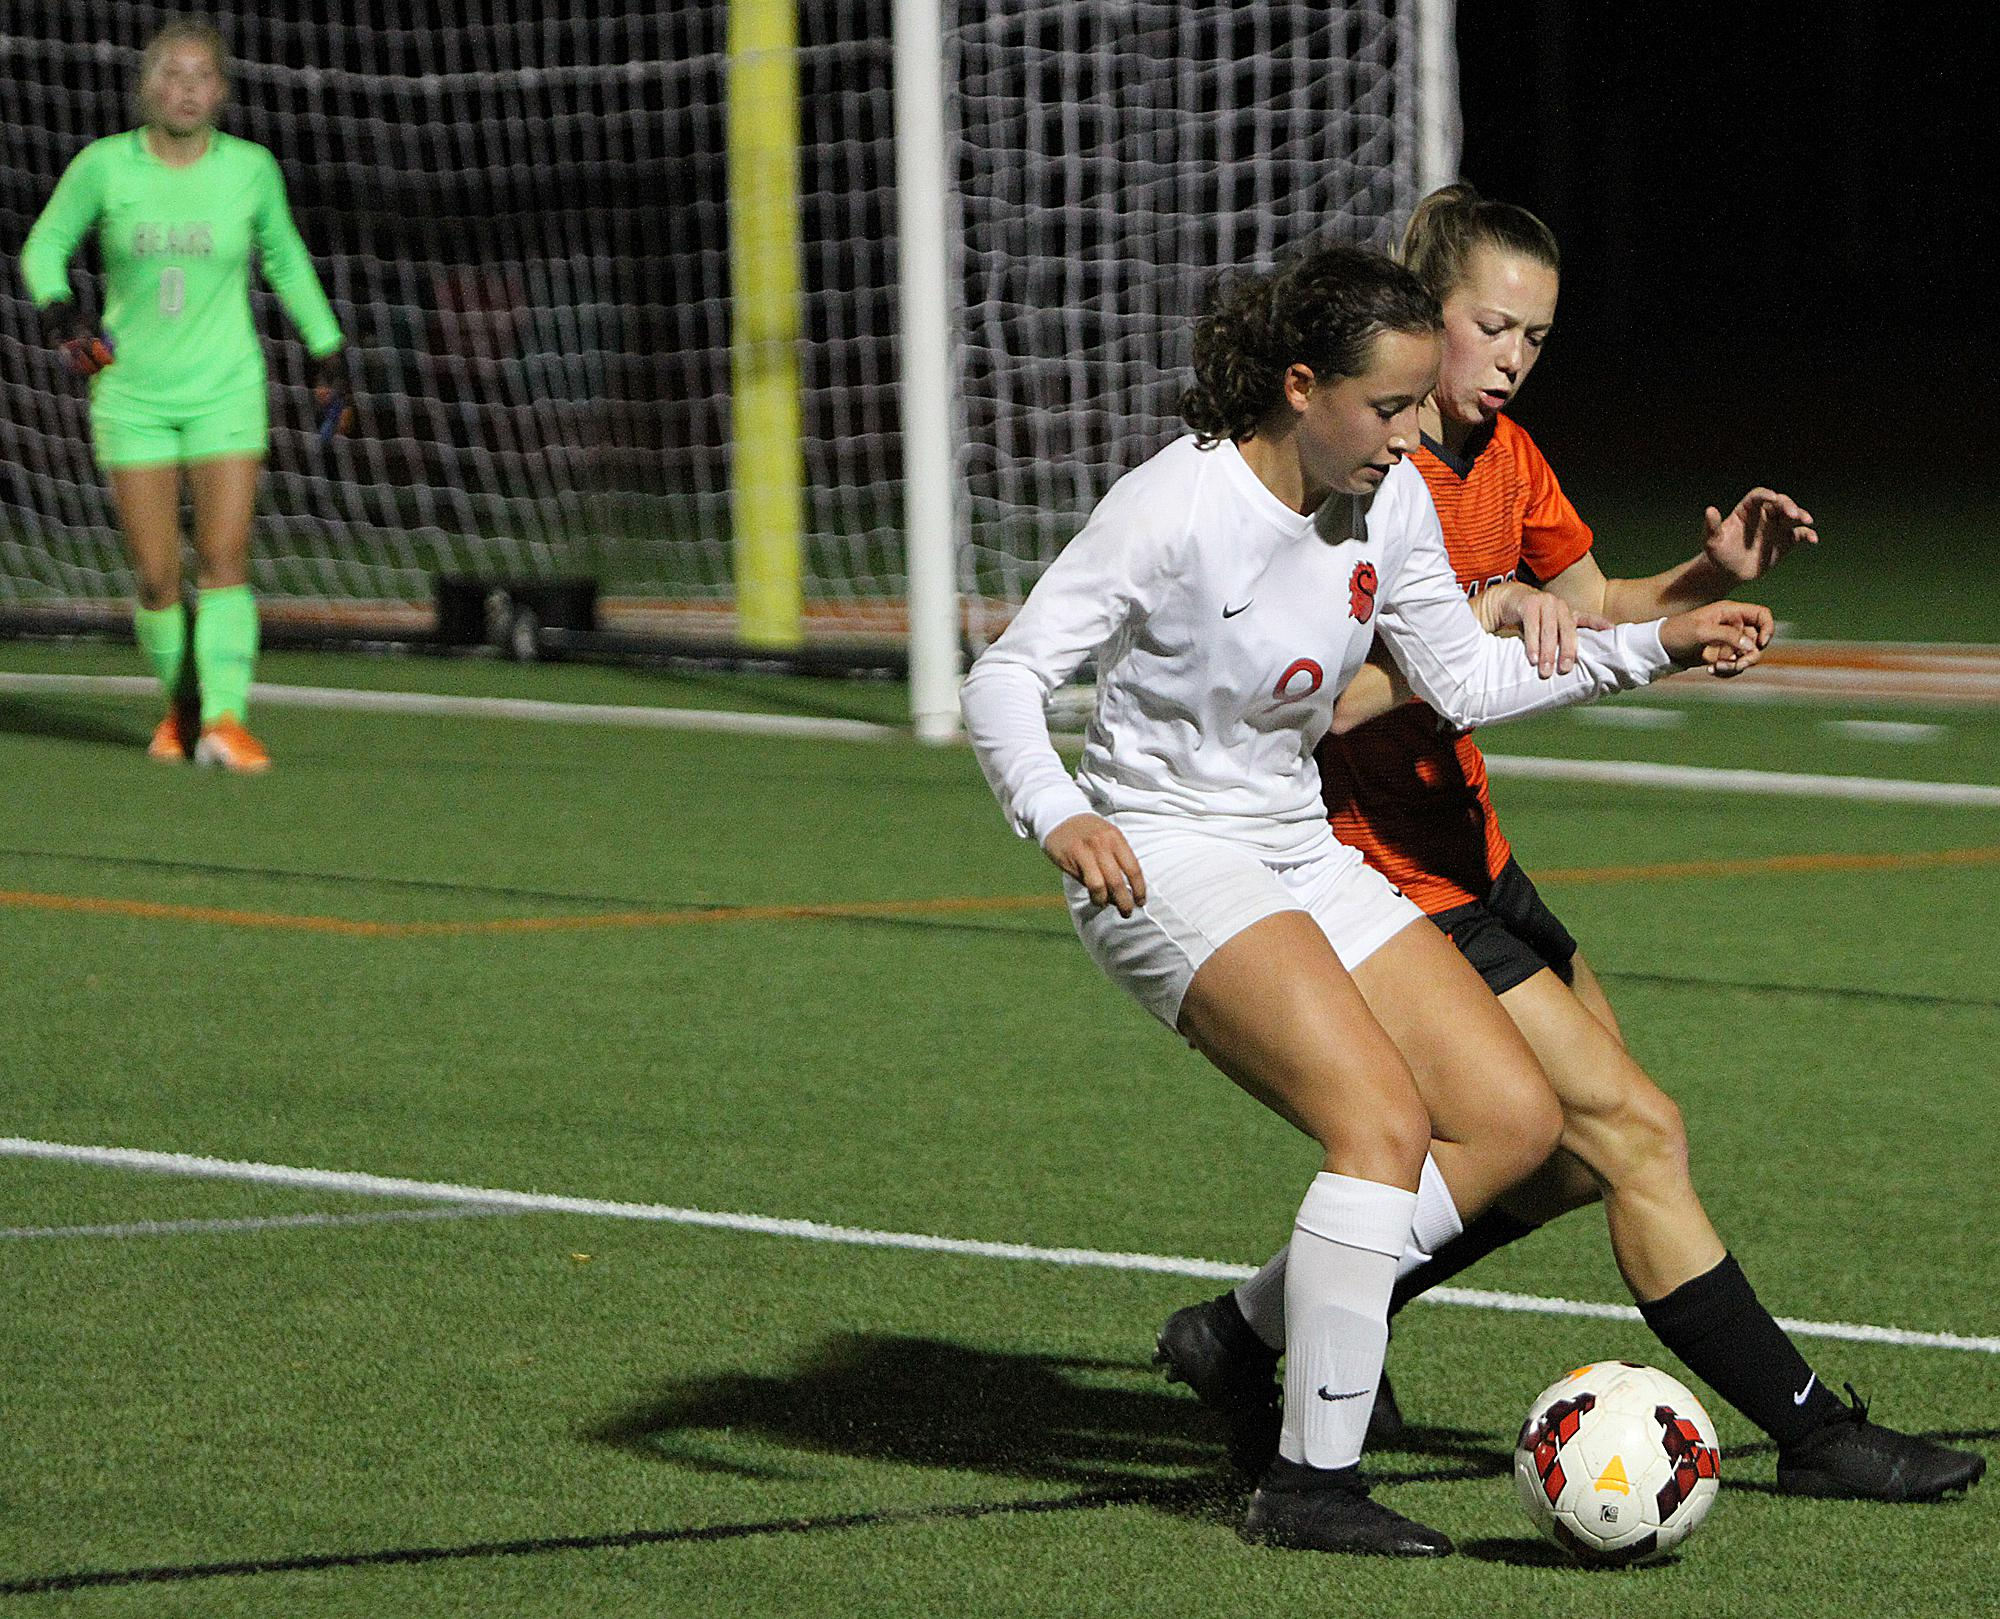 Stillwater's Marissa Bonilla battles for the ball along the sideline late in the second half. Stillwater shut out the host Bears for a 2-0 win that keeps them in first place atop the conference standings. Photo by Drew Herron, SportsEngine